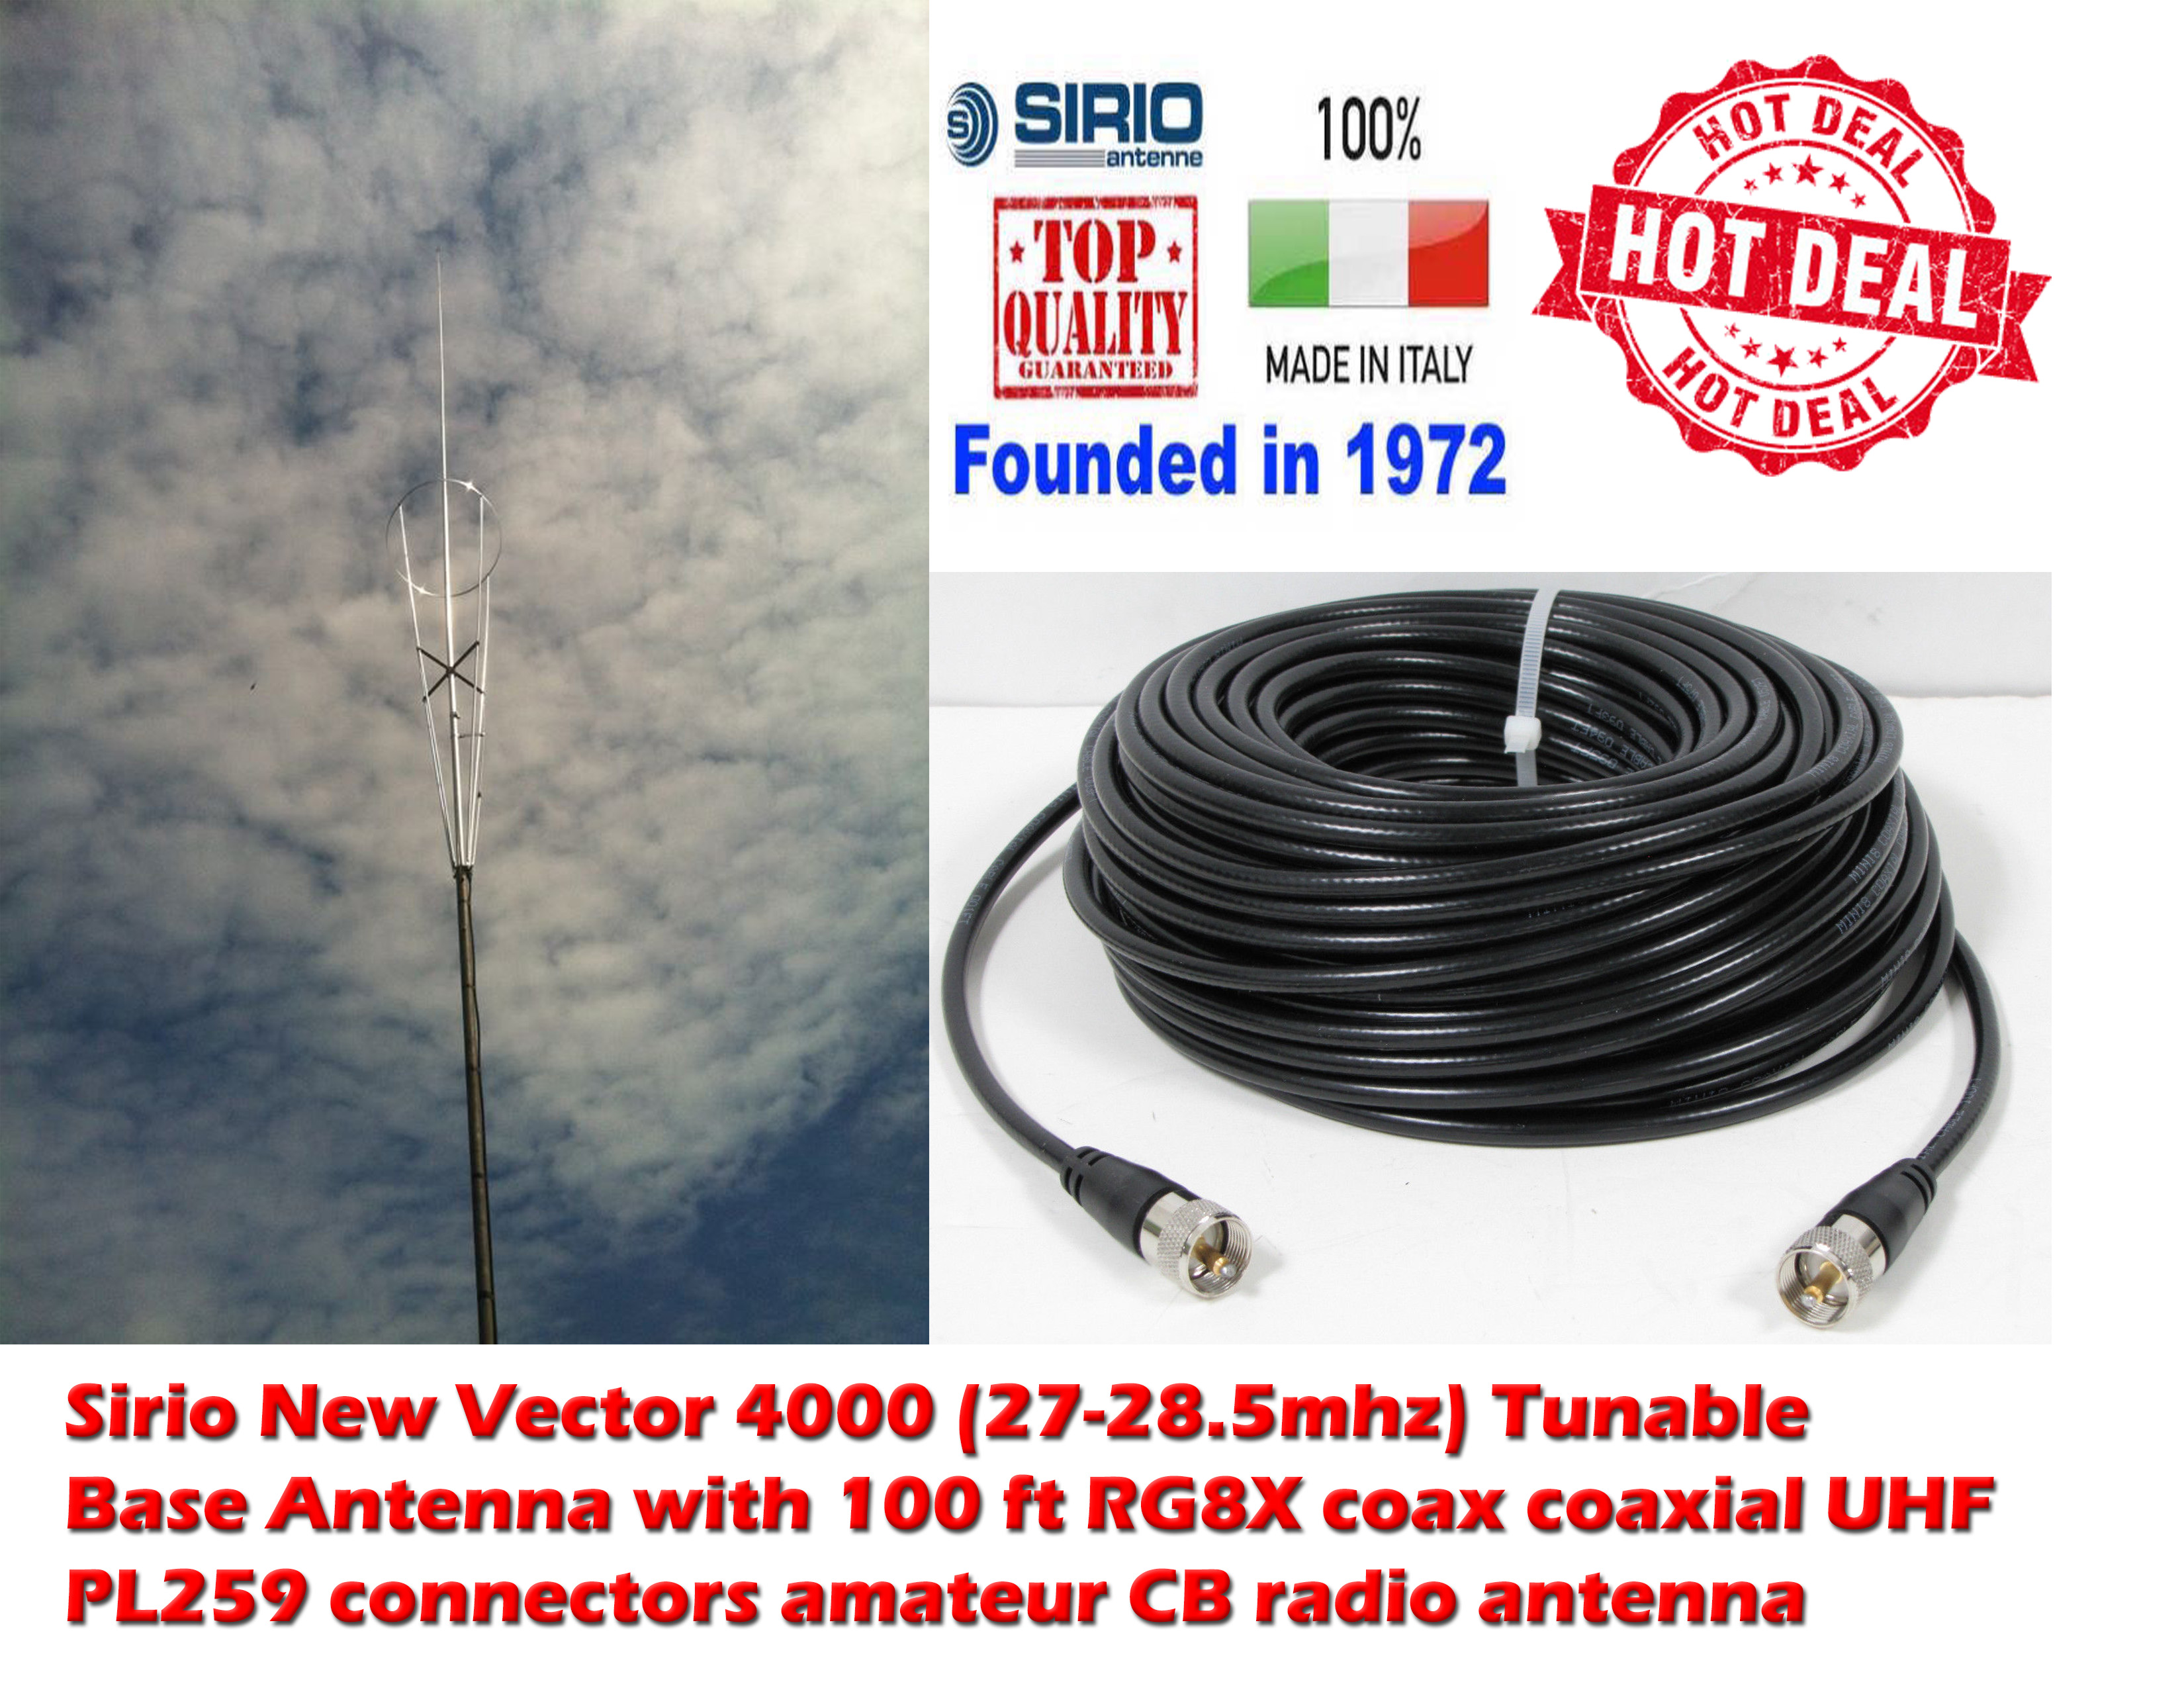 Sirio New Vector 4000 10M-HAM Tunable Base Antenna +100Ft Coax